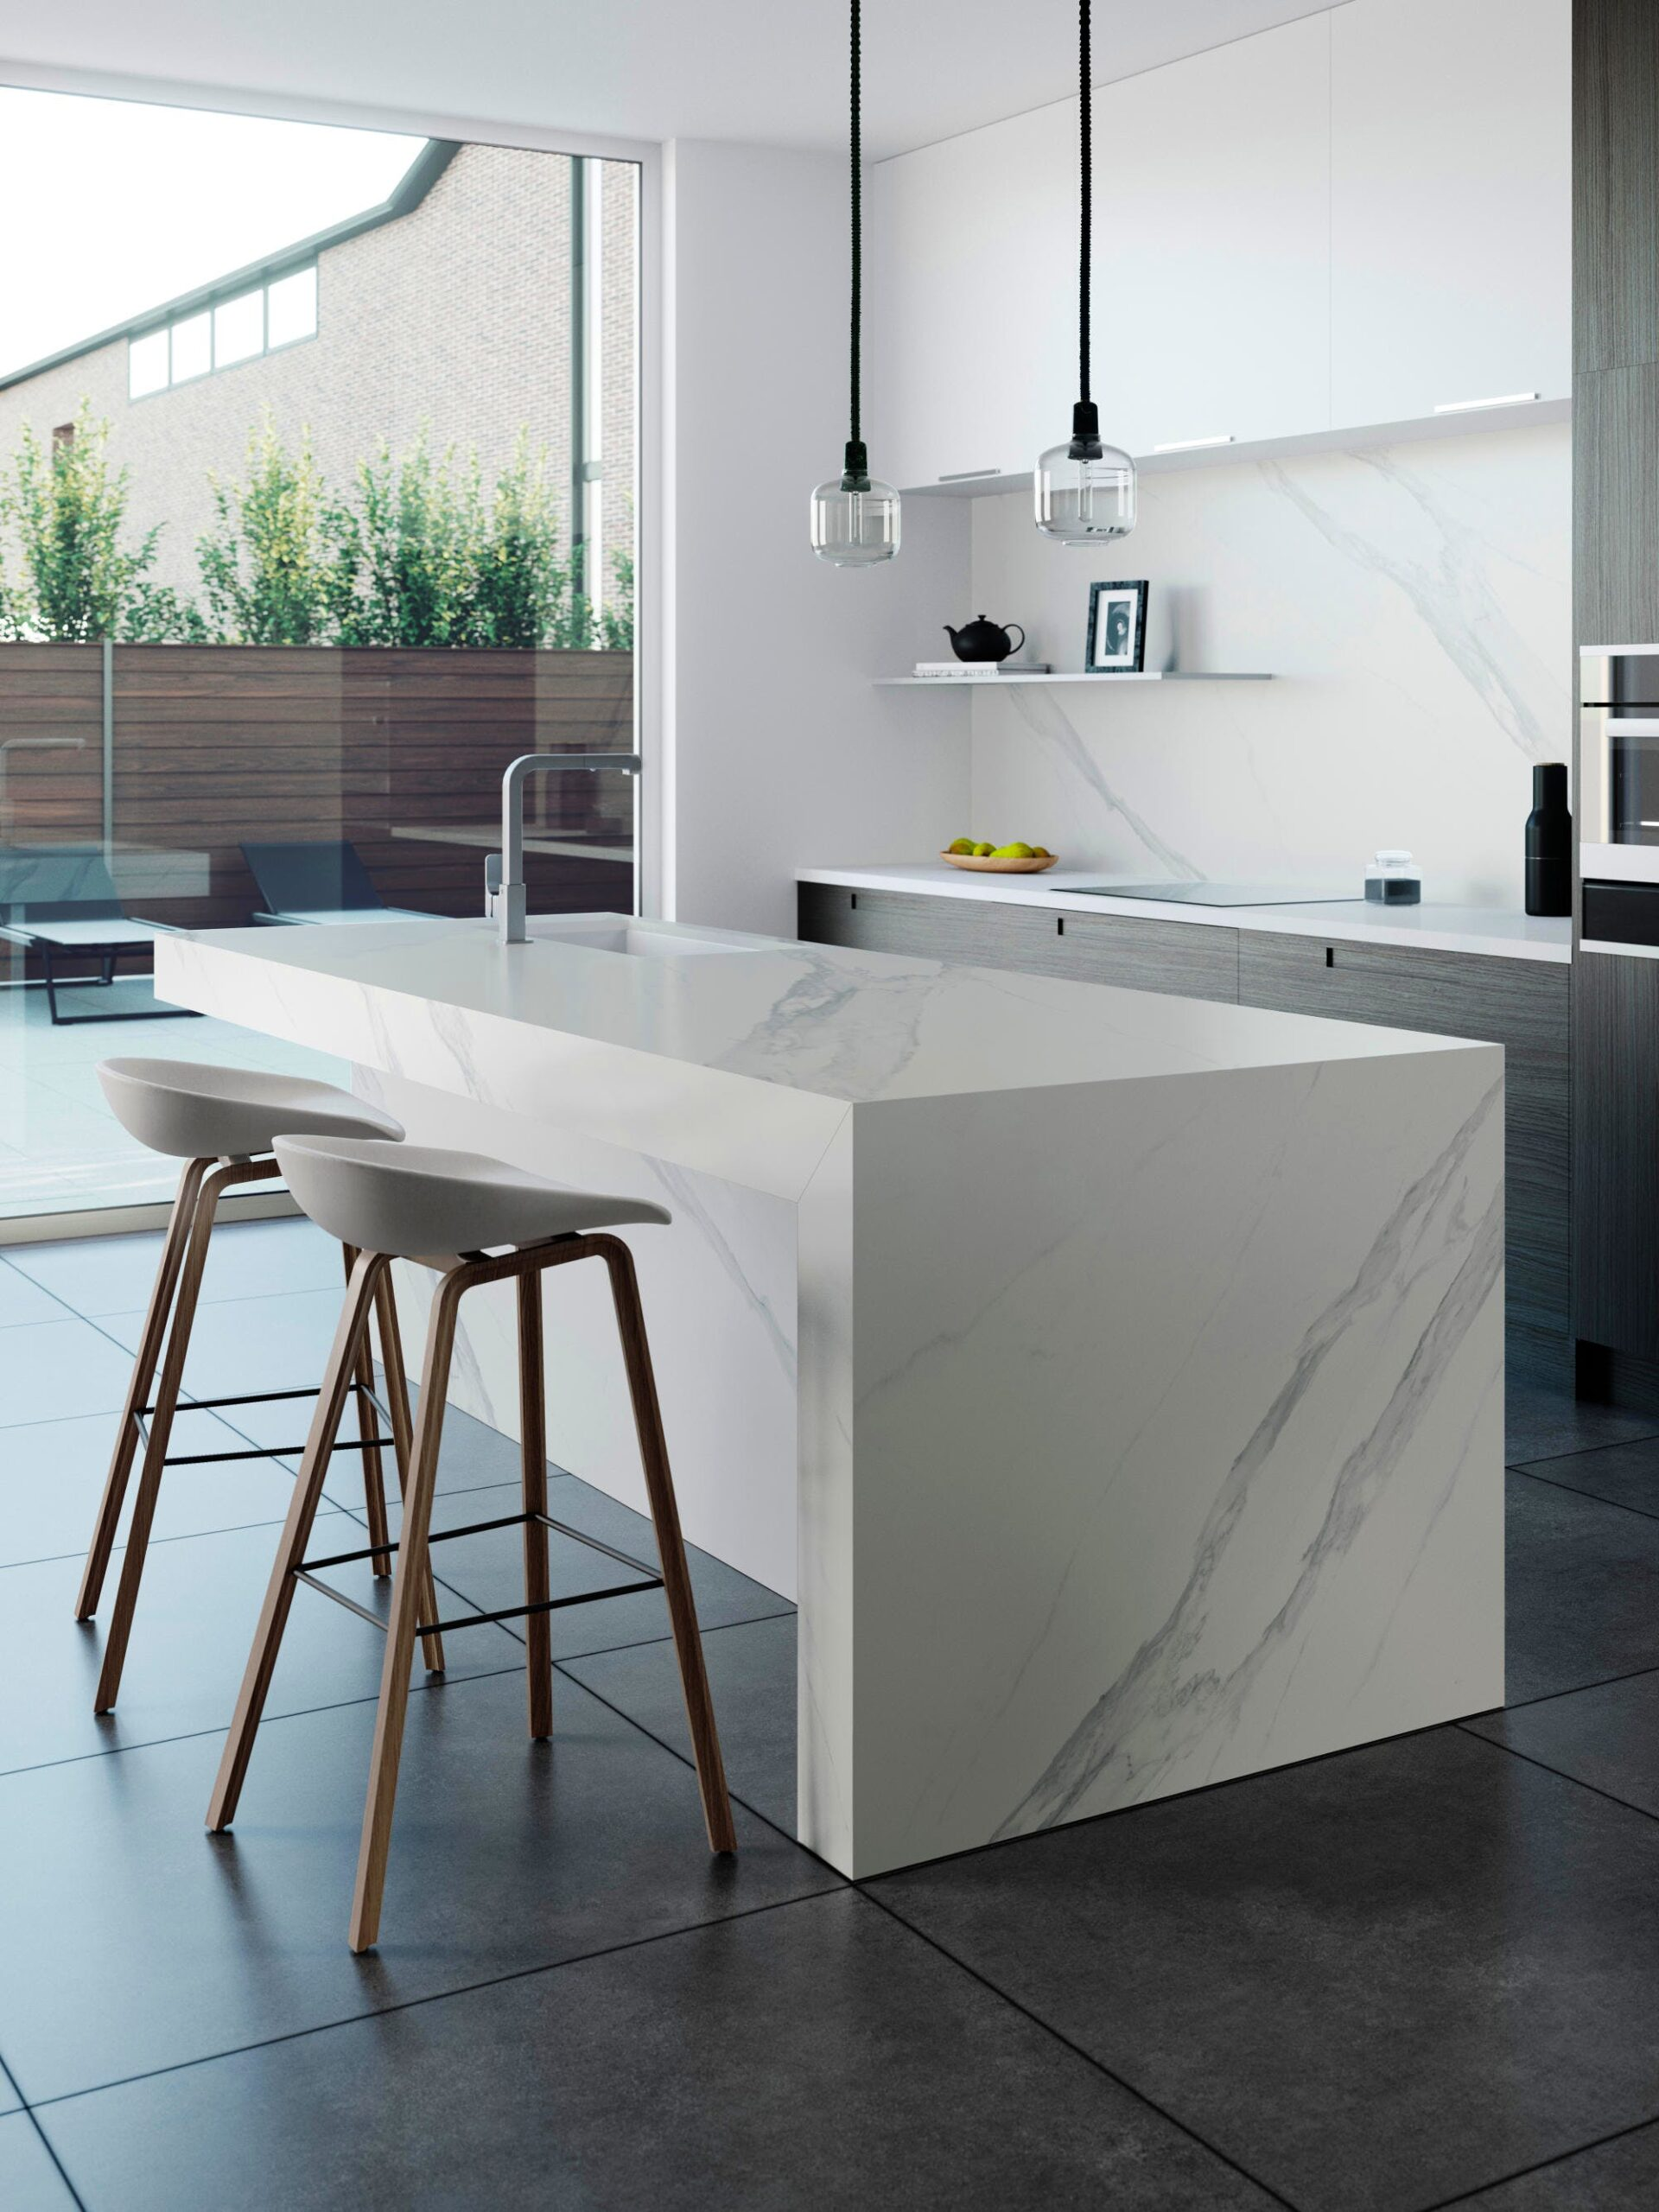 Image of Dekton Kitchen Opera 2 scaled in The Purity and Architectural Beauty of Travertine Marble - Inspiring Luxury Materials - Cosentino